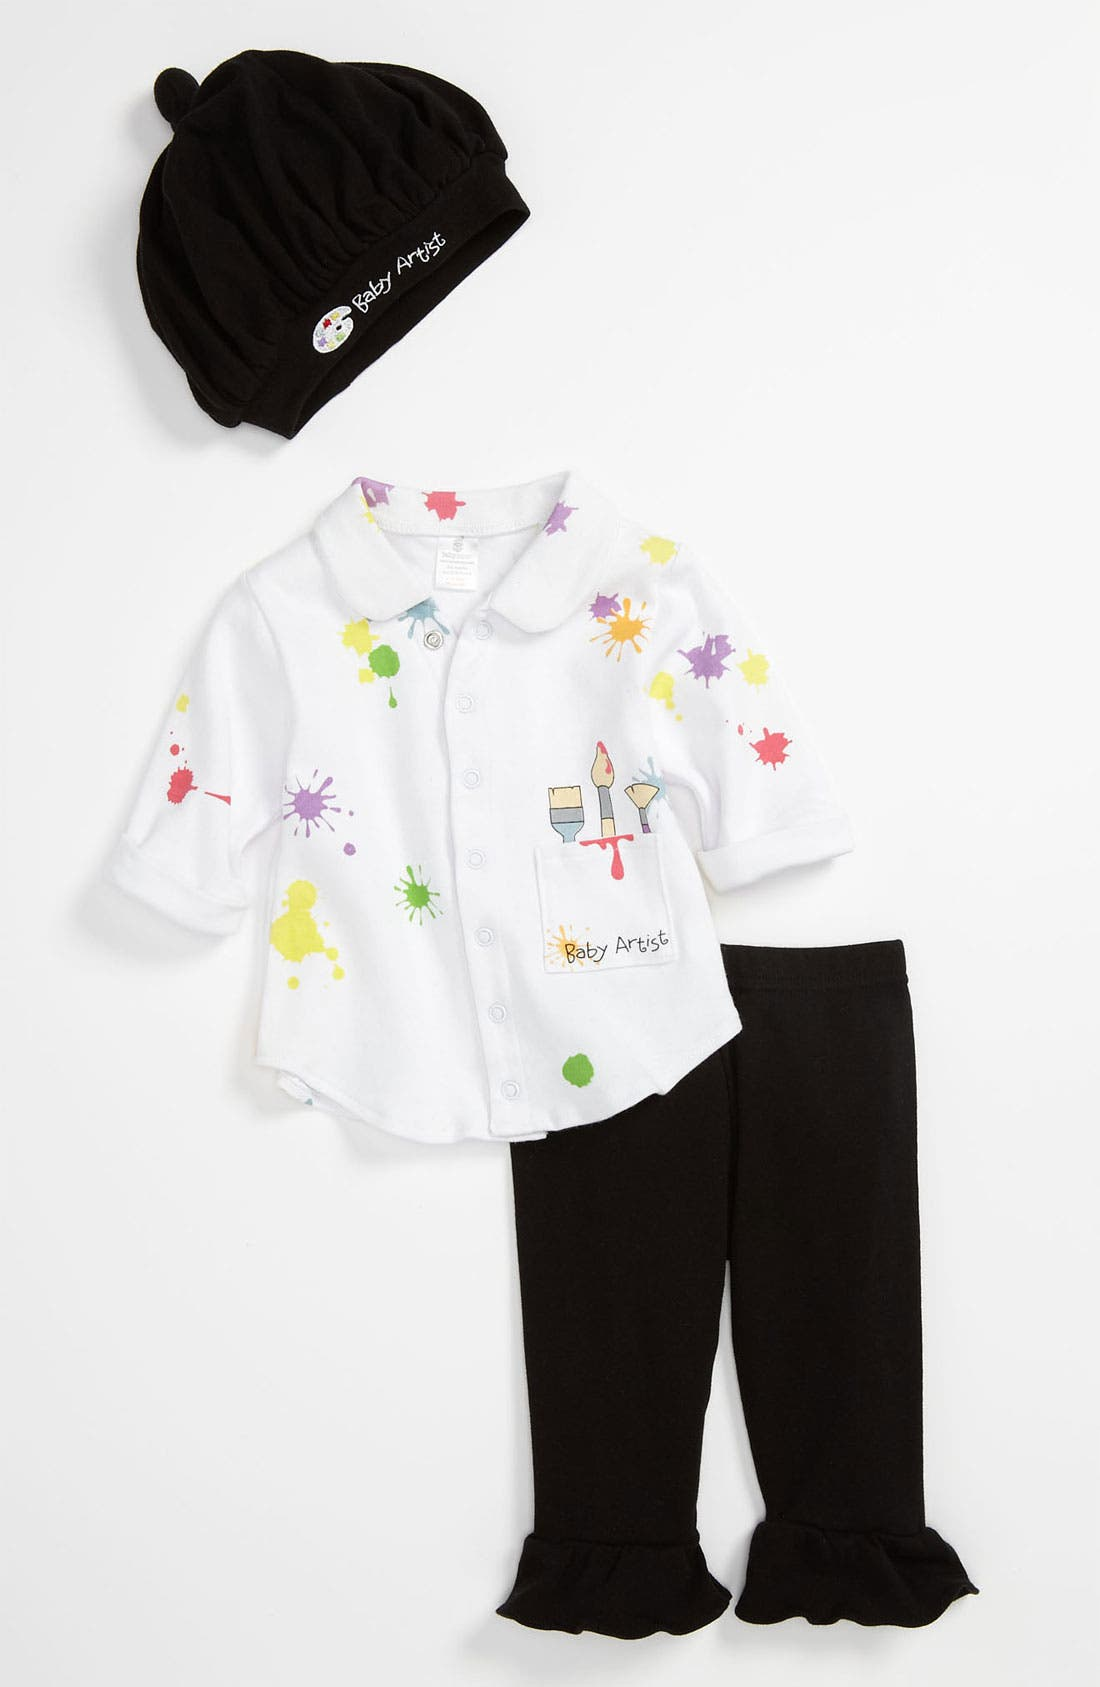 Alternate Image 1 Selected - Baby Aspen 'Baby Artist' Shirt, Pants & Hat (Baby)